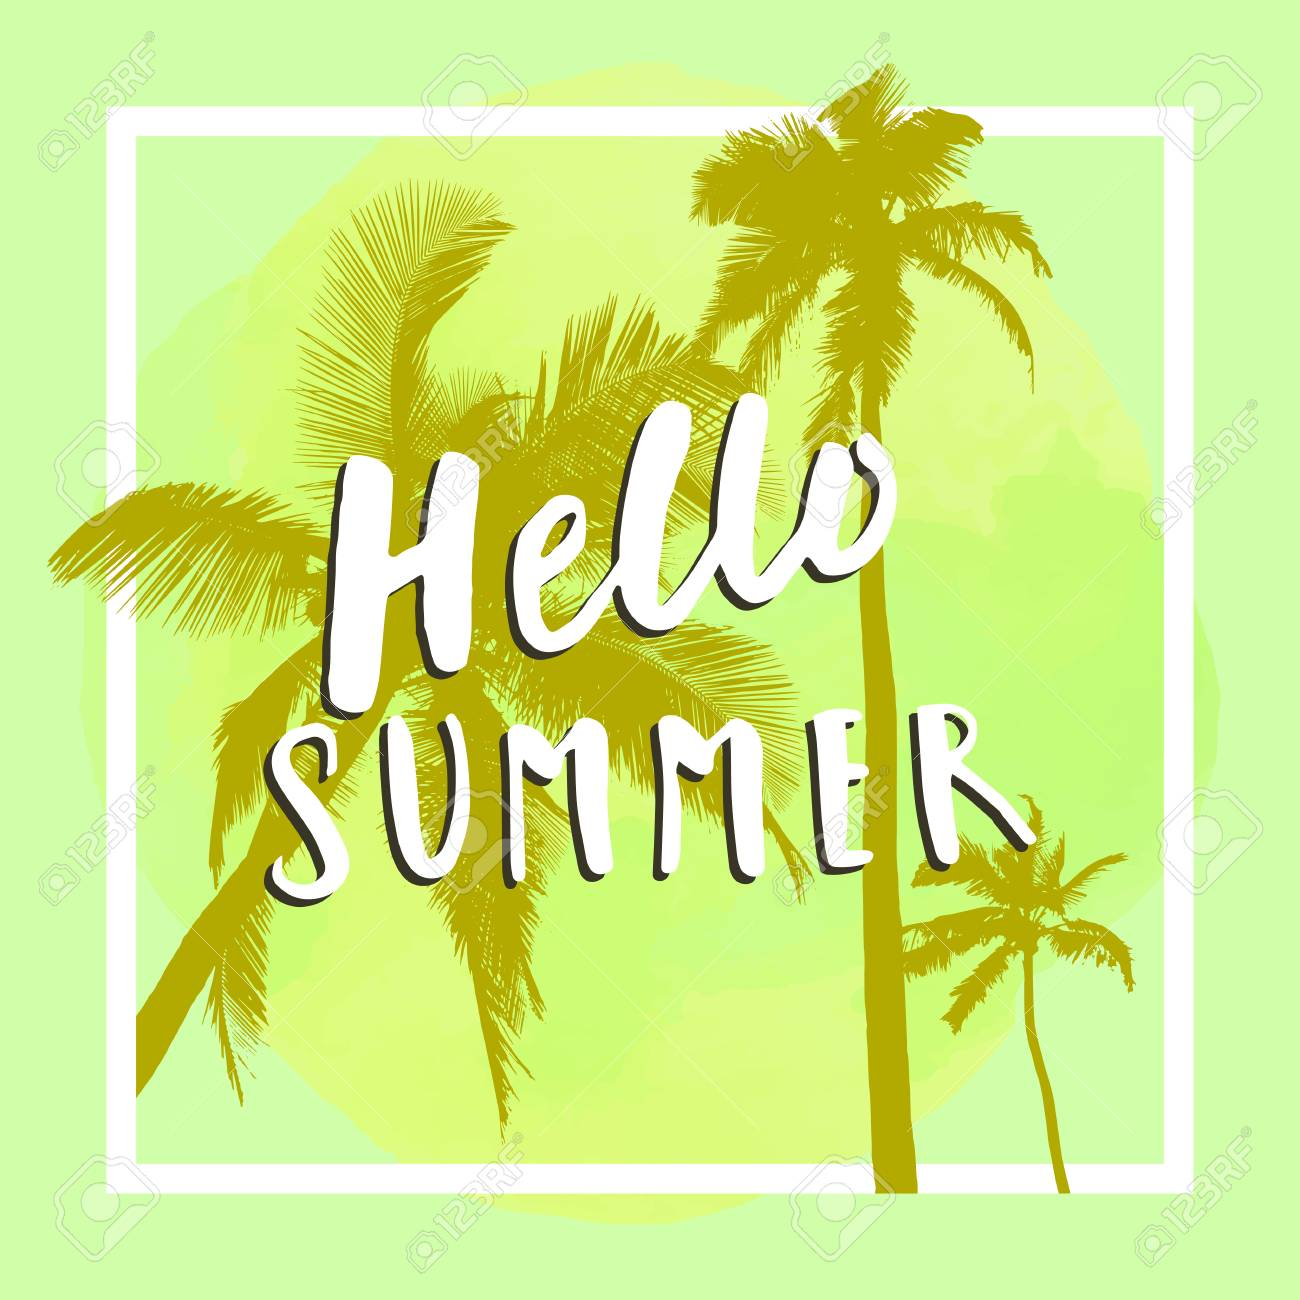 590936e3f896 Hello Summer. Modern calligraphic T-shirt design with flat palm trees on  yellow colorful